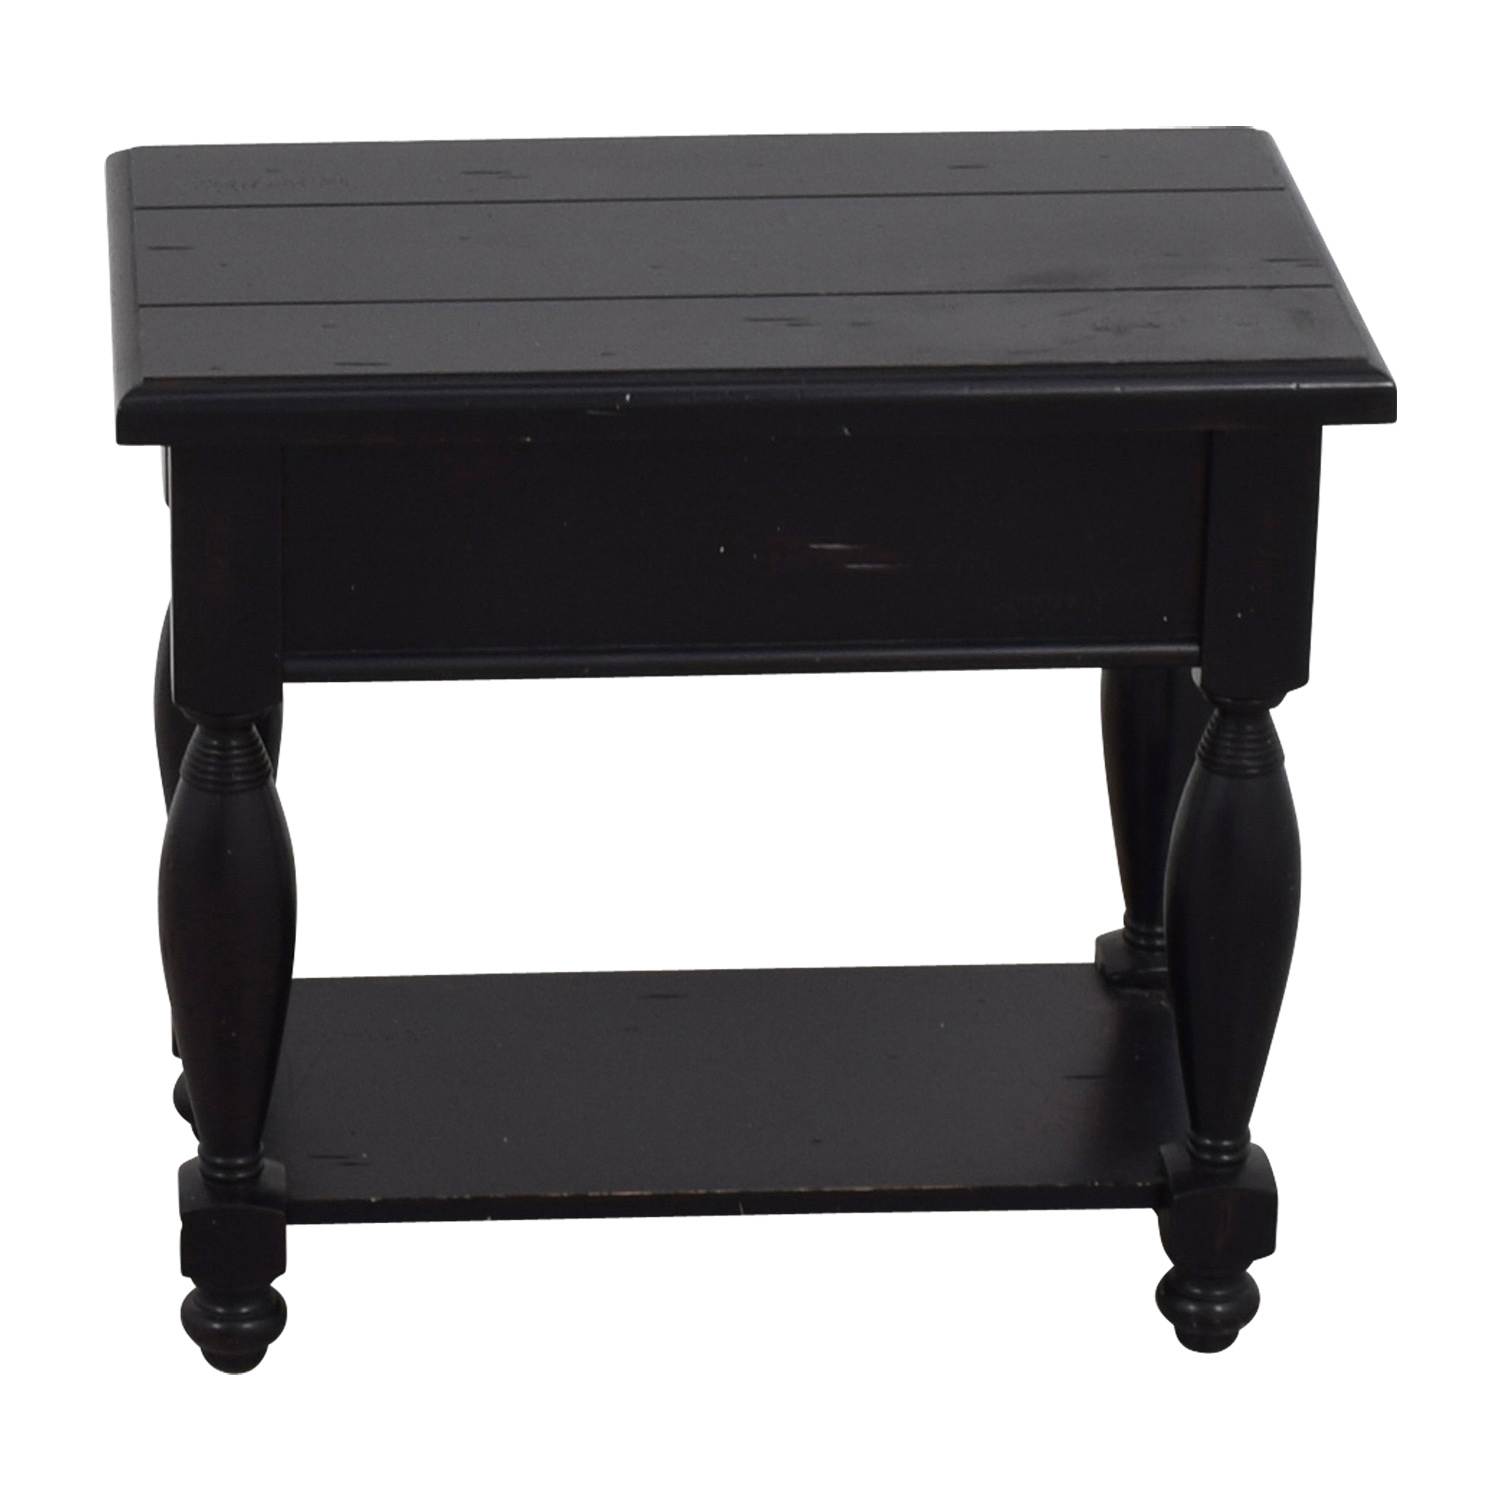 buy Raymour & Flanigan Black Side Table Raymour & Flanigan Storage